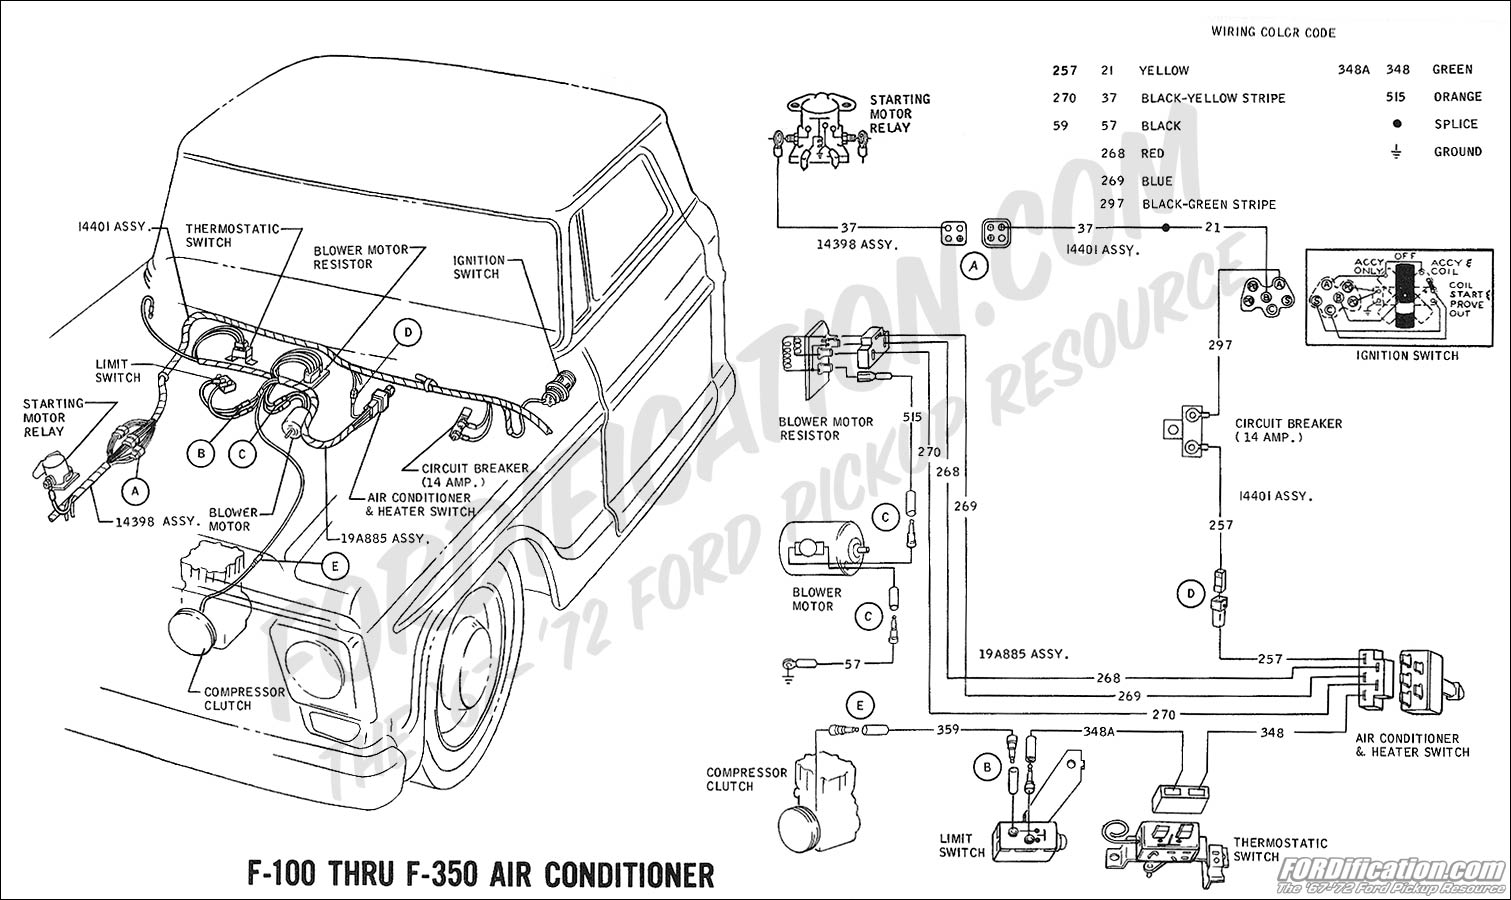 91 Ford F 350 Wiring Diagram Coil Will Be A Thing Free Diagrams 1988 1983 150 Air Conditioning Get 1994